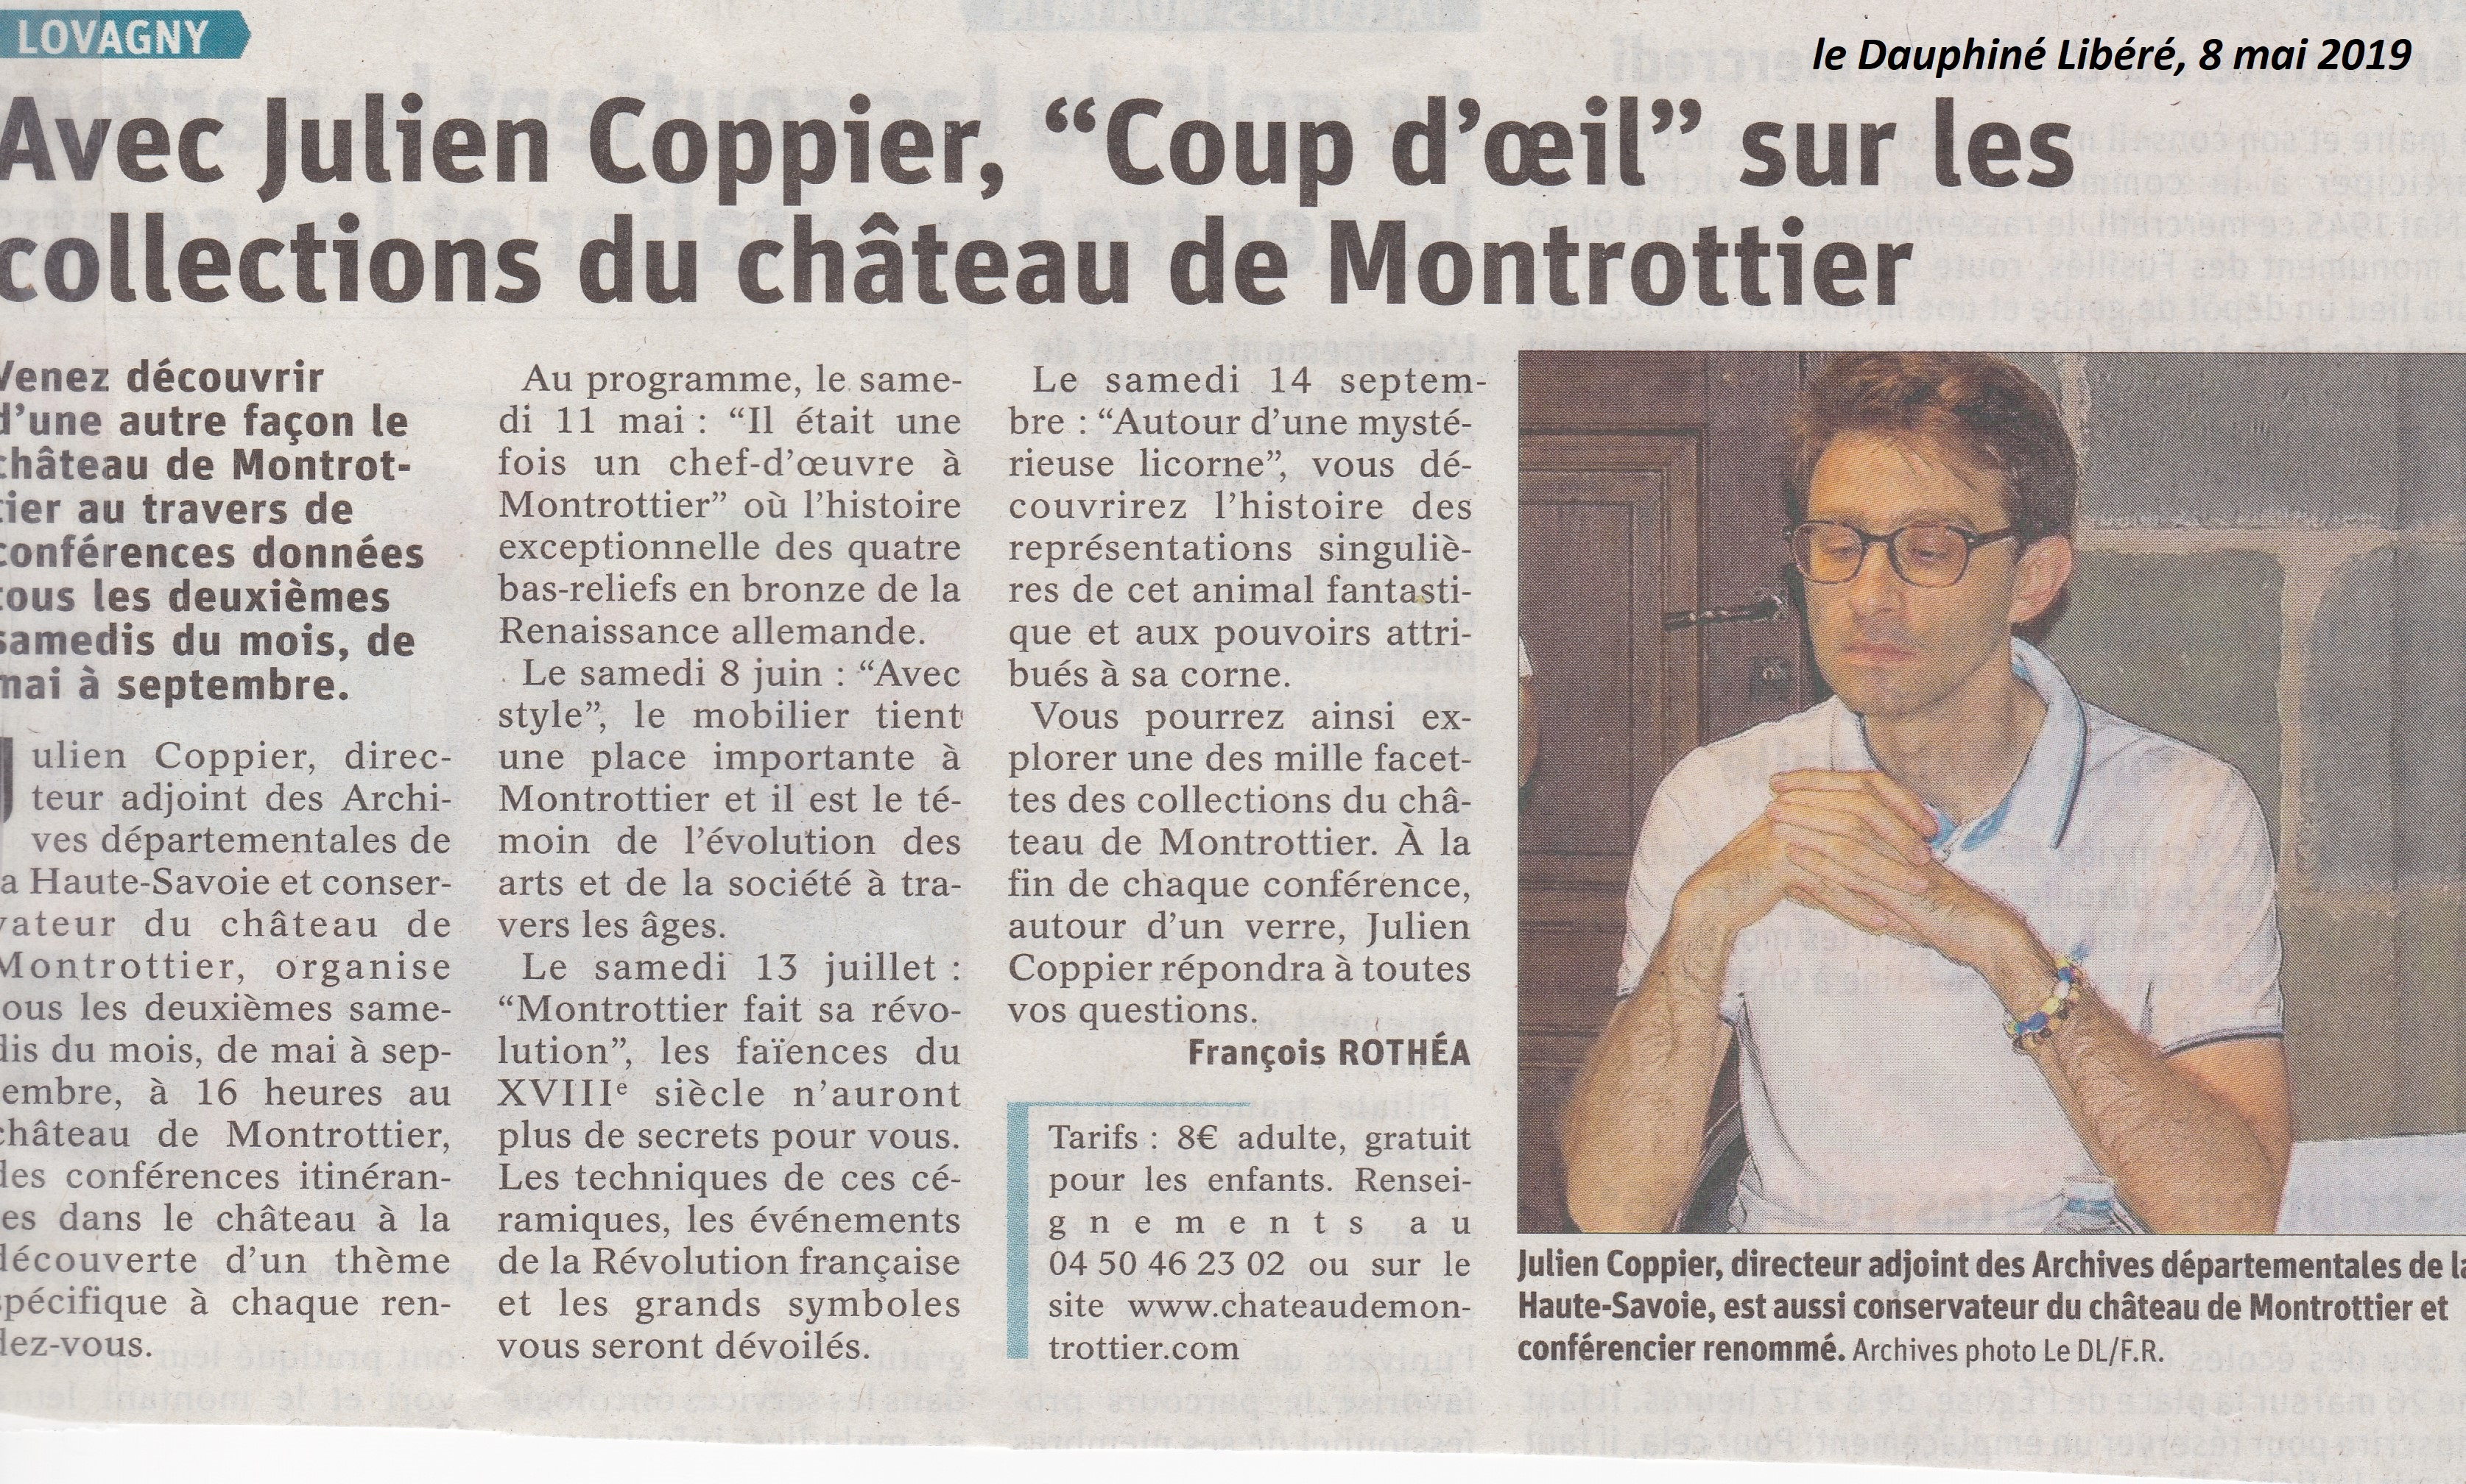 2019 05 08 julien coppier a montrottier